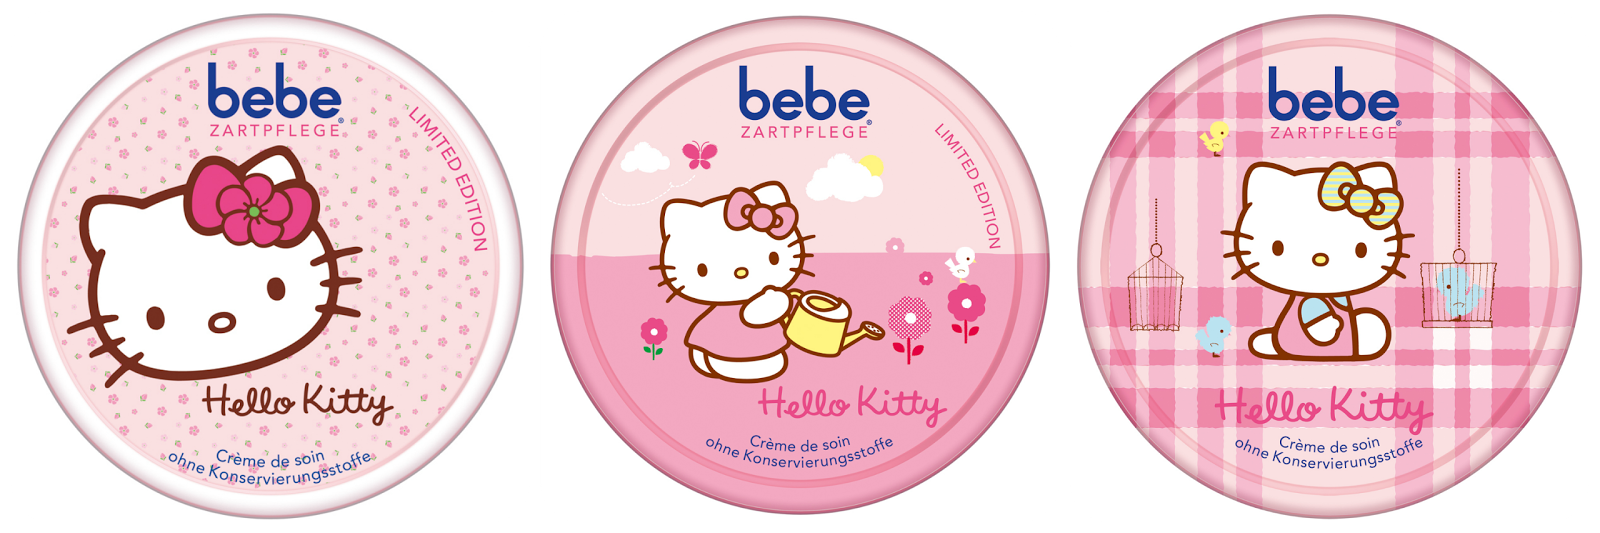 "bebe Zartpflege-Set ""Hello Kitty"""